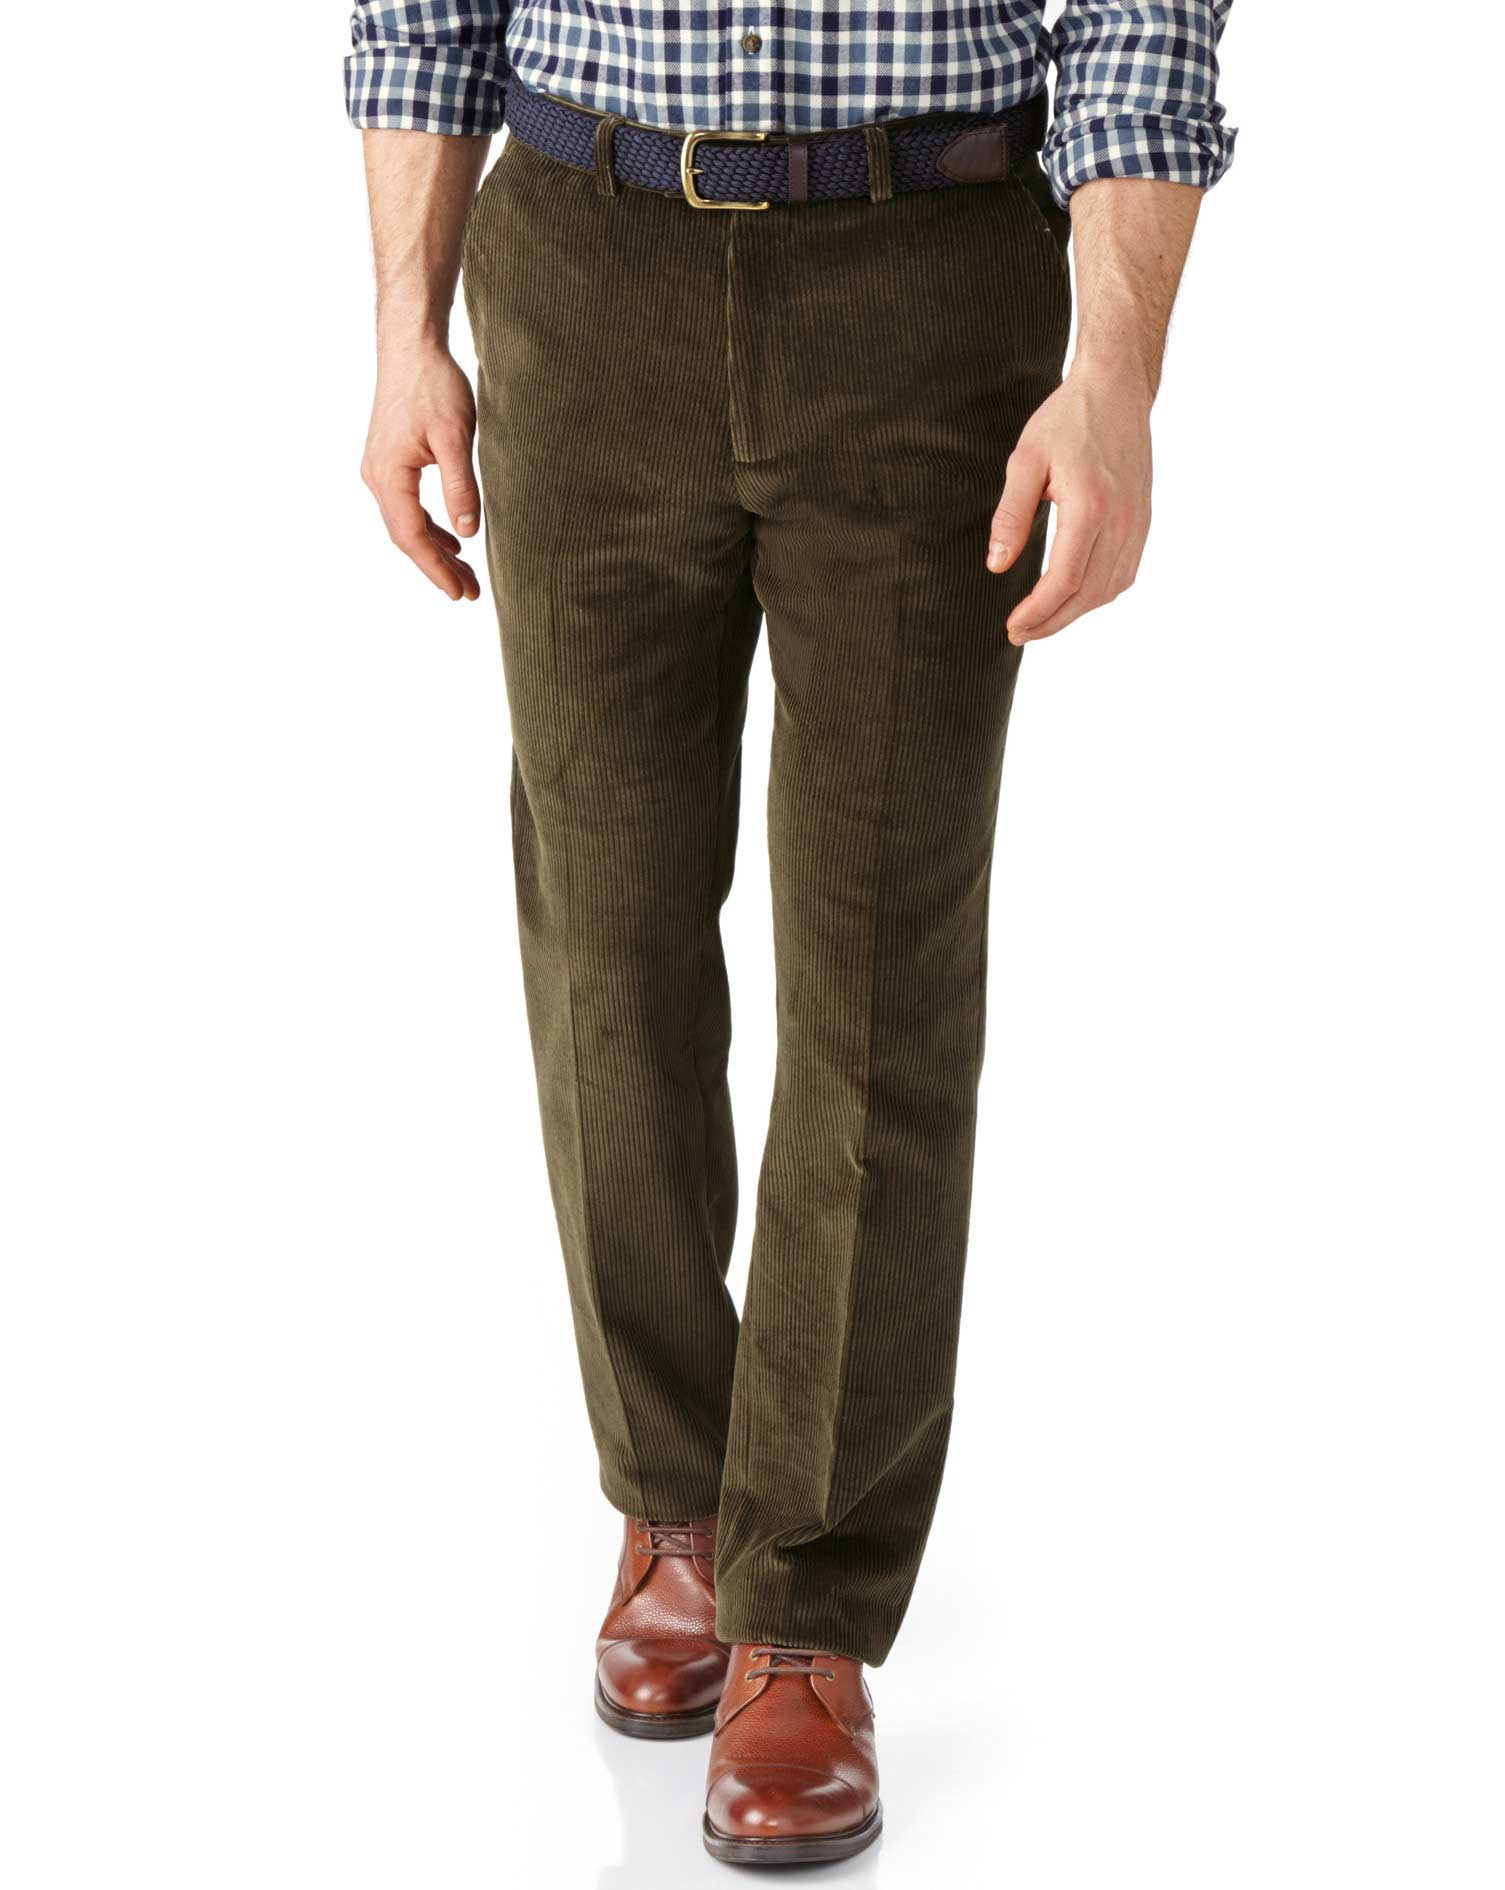 Olive Slim Fit Jumbo Cord Trousers Size W40 L32 by Charles Tyrwhitt